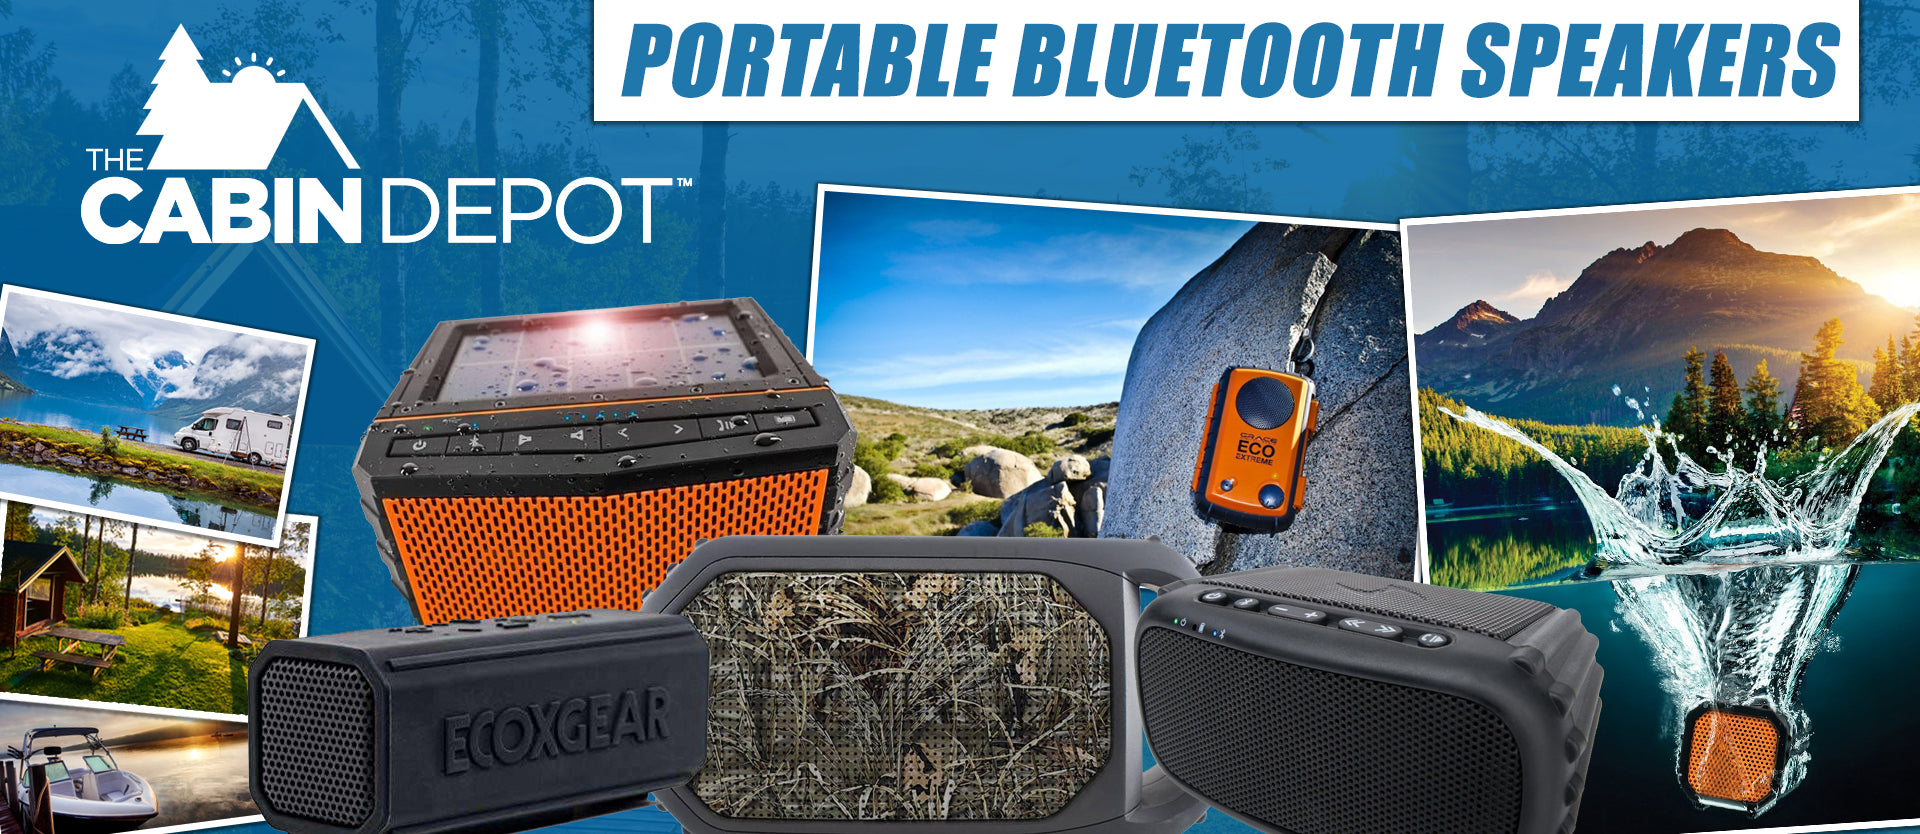 Portable Bluetooth Speaker The Cabin Depot ™ Canada